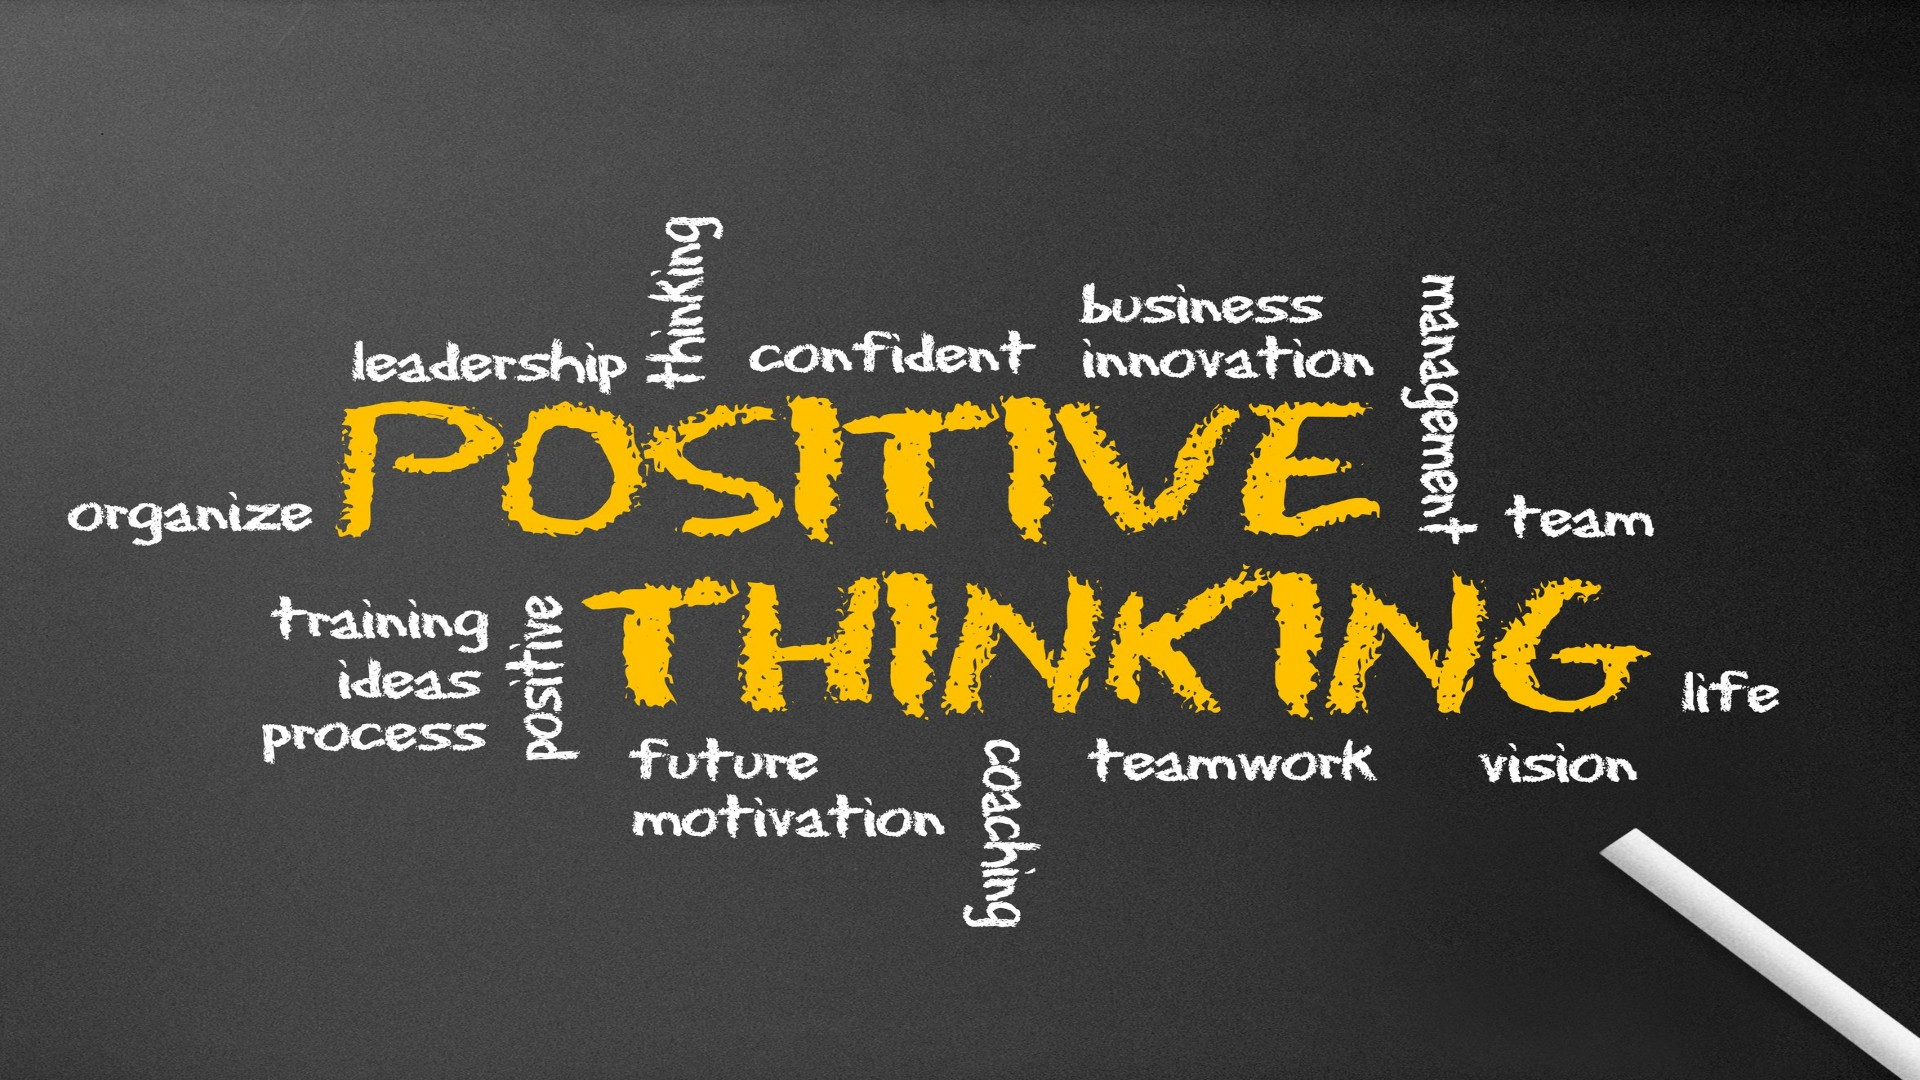 Positive-wallpapers - Positive Thinking - 1920x1080 ...